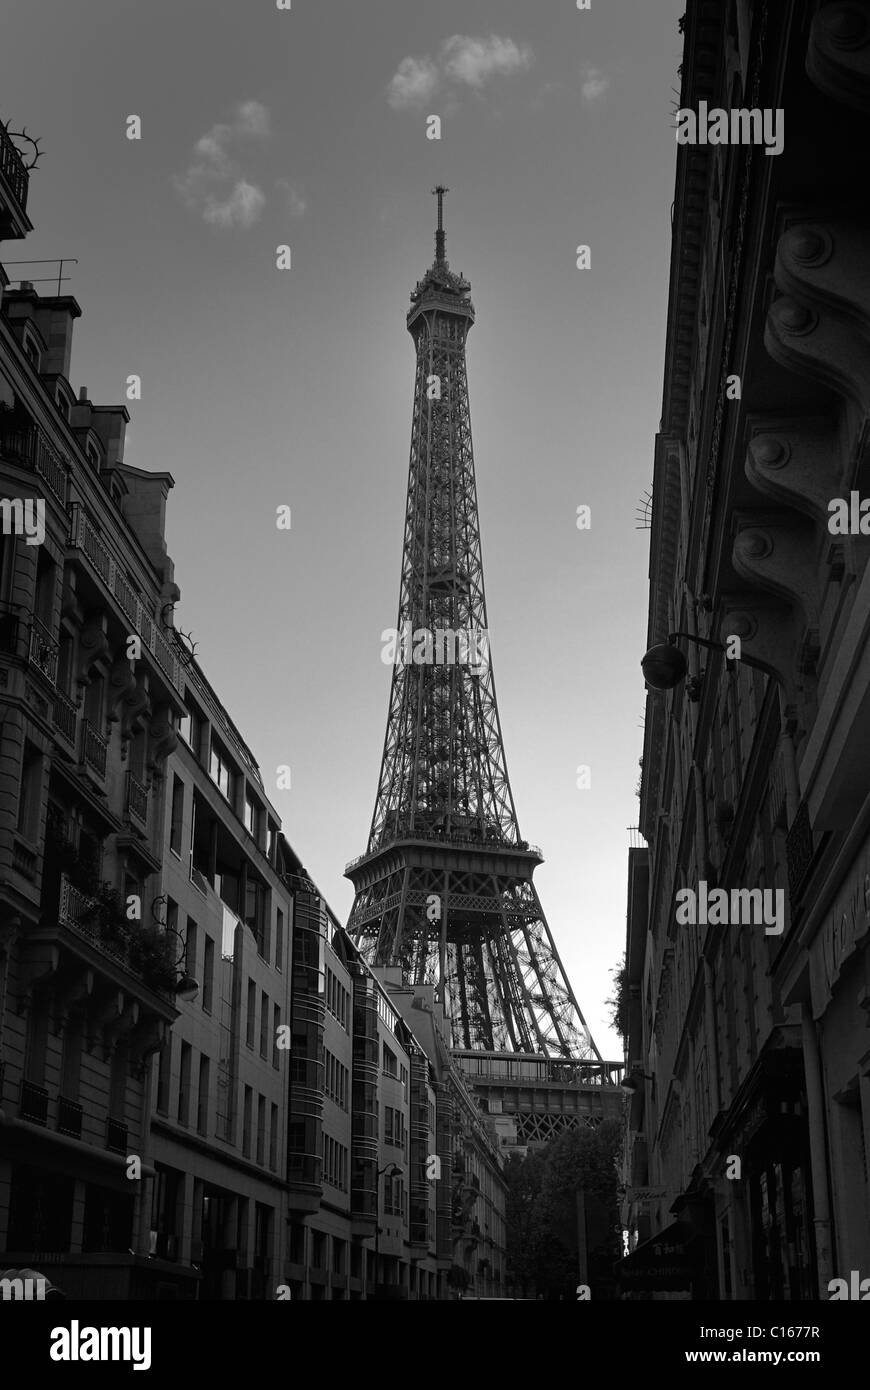 The Eiffel Tower is one of the more famous of Paris Landmarks. - Stock Image